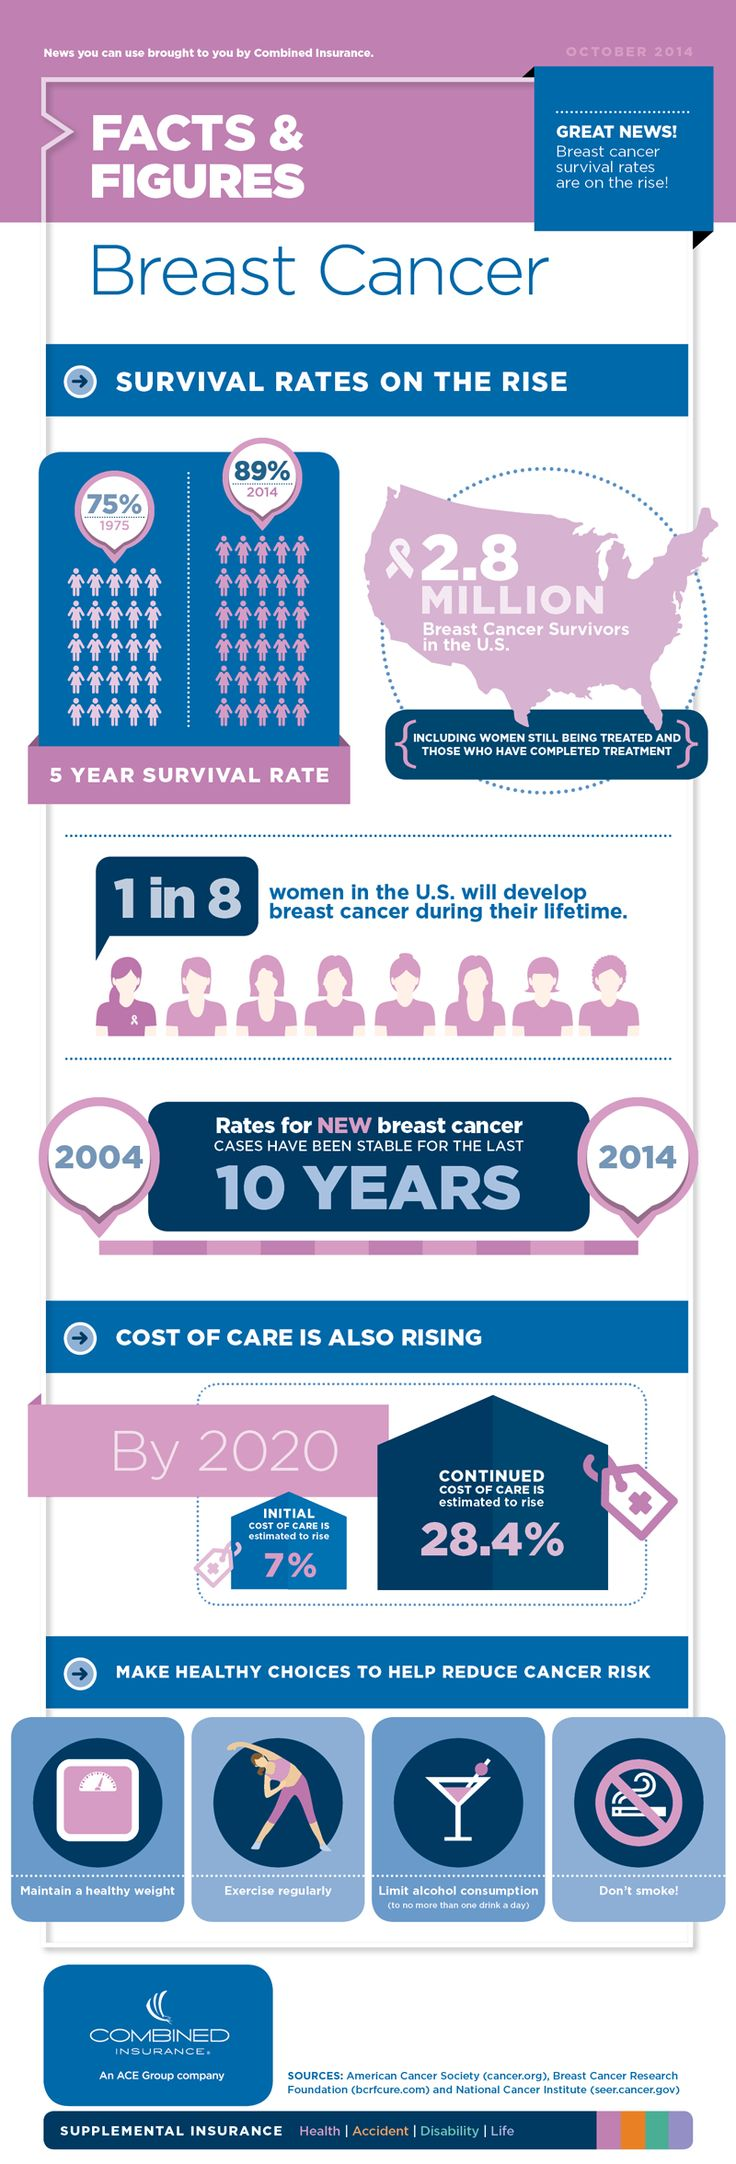 Combined Insurance Infographic - Breast Cancer